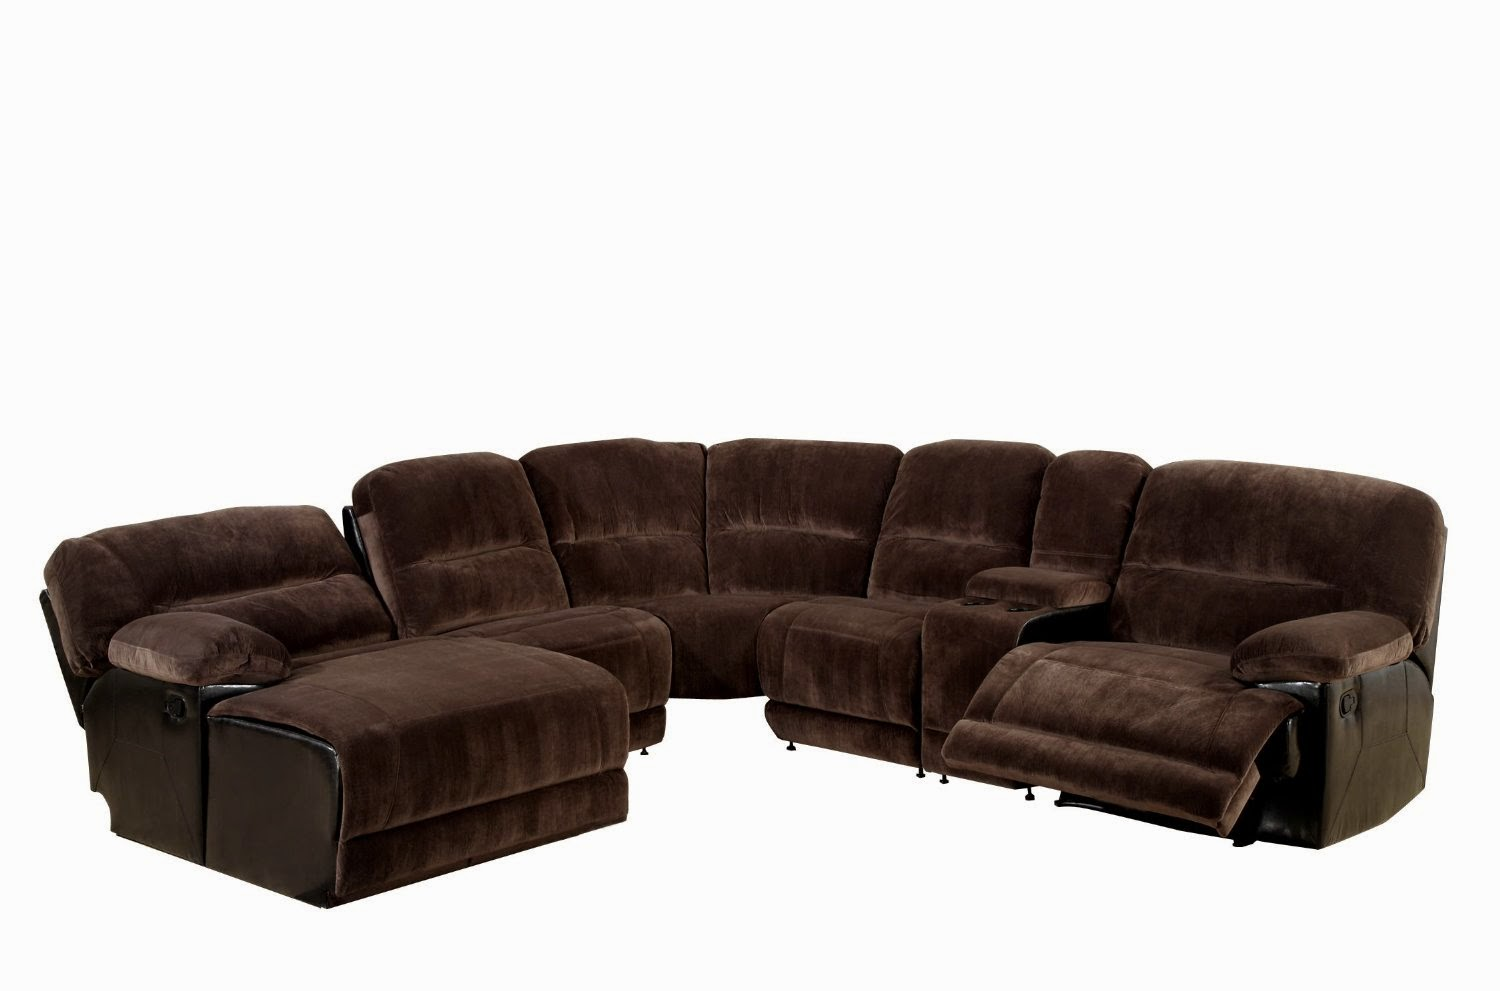 Reclining sofas for sale cheap saddle microfiber for Microfiber sectional sofa